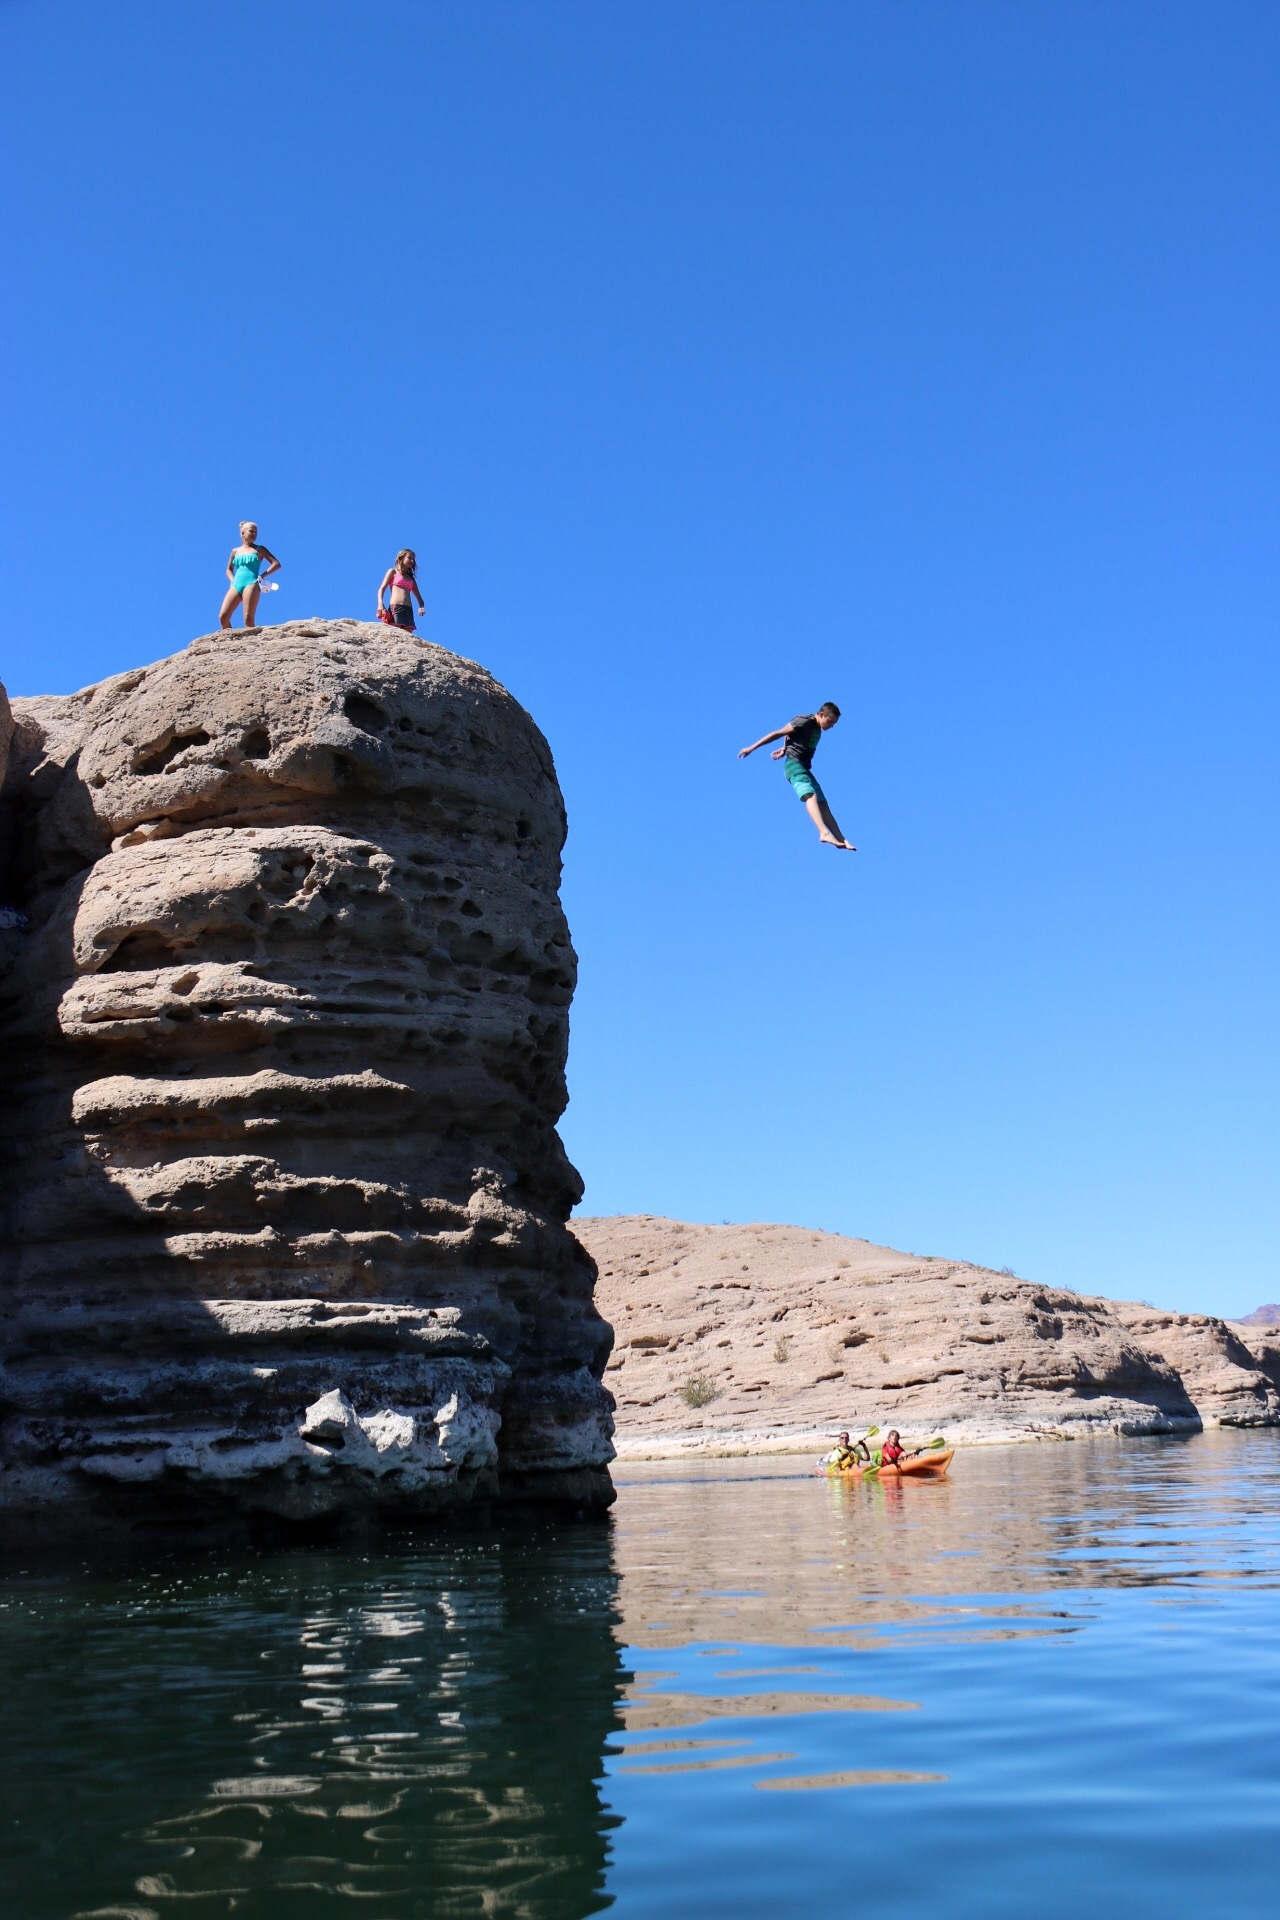 Cliff jumping at Nelson's Landing: Kayak the Colorado River